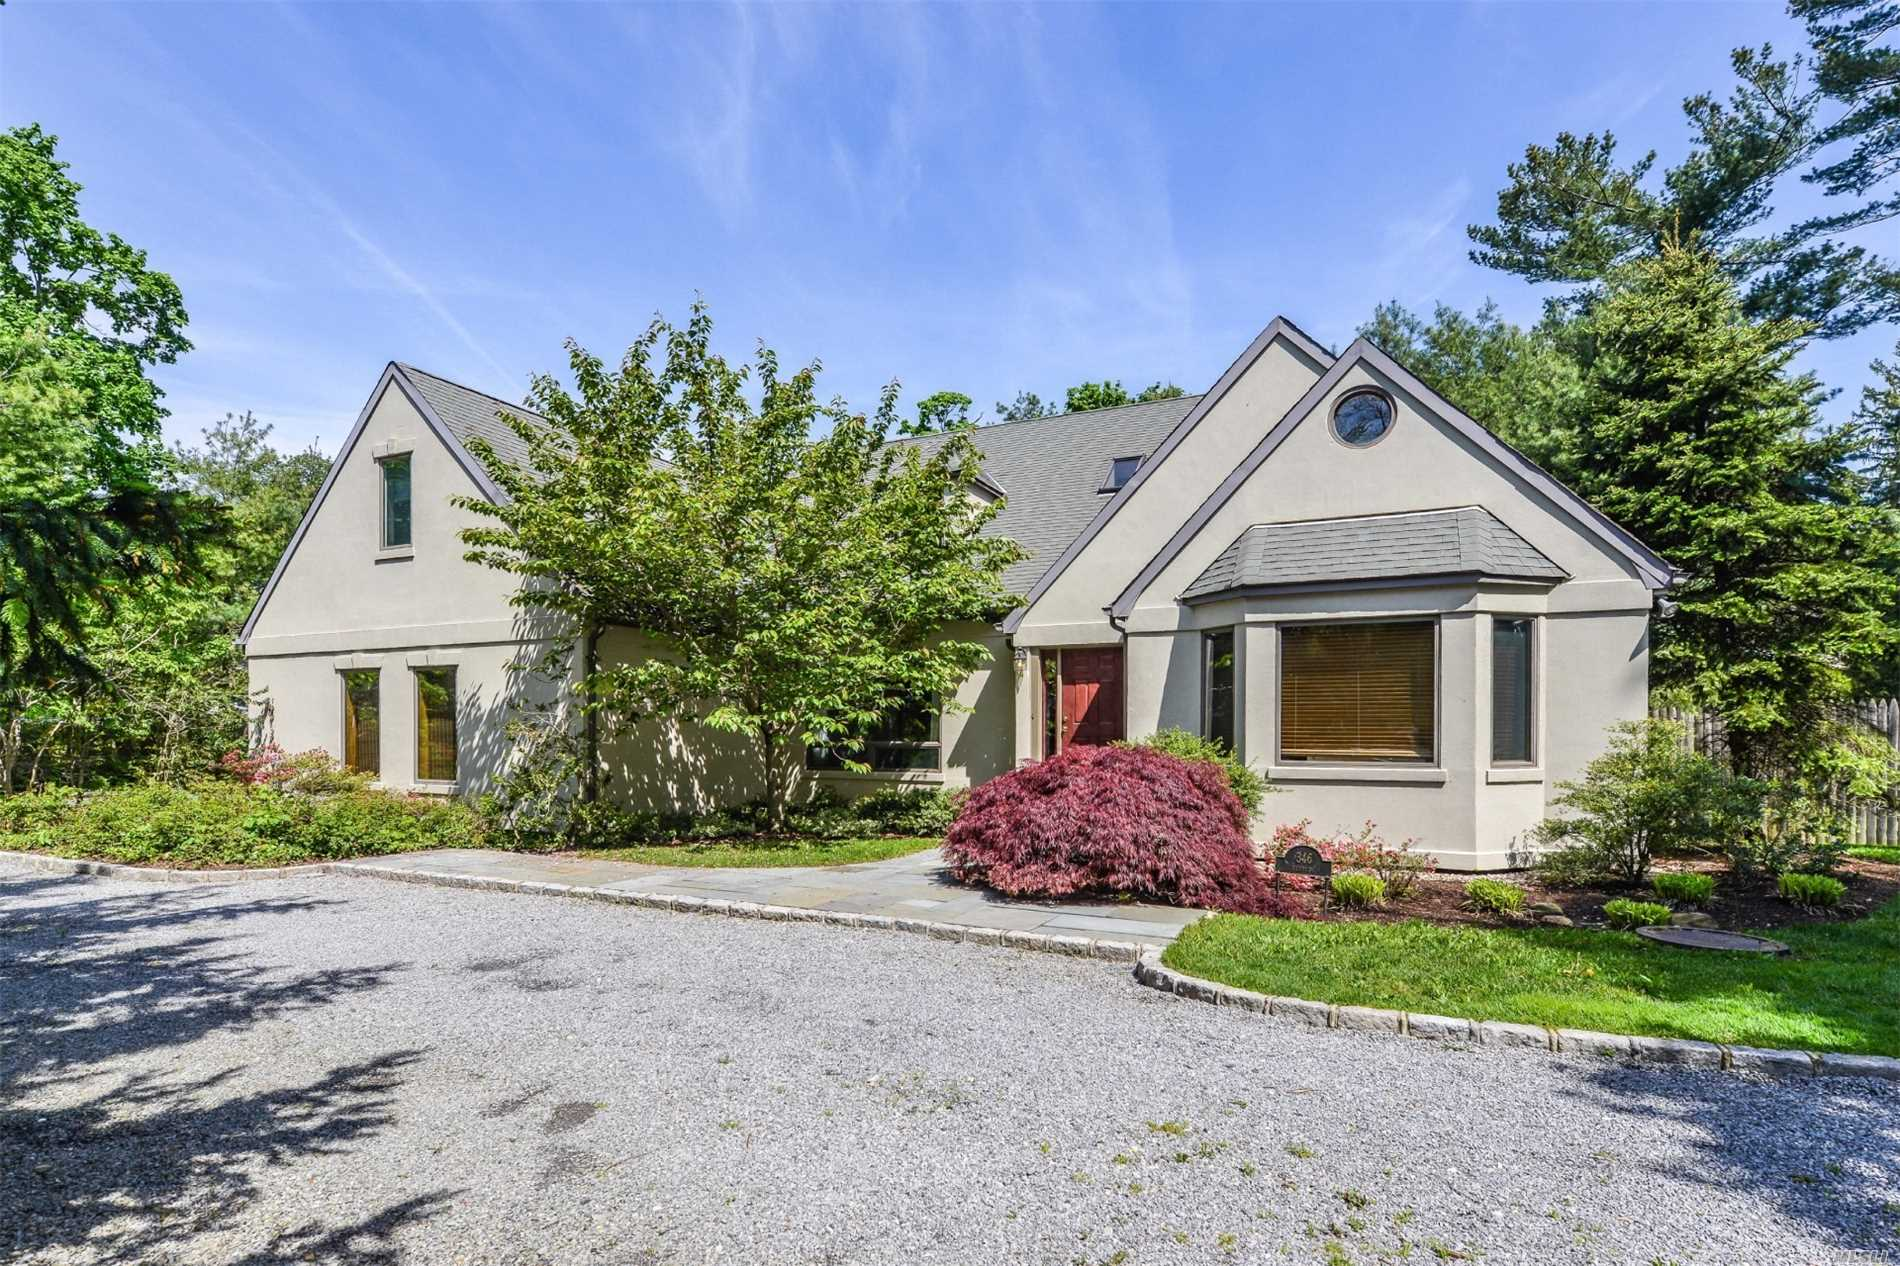 Charming 3 Bedroom Colonial Located On Centre Island. Renovated Second Floor Features Spacious Great Room With Water Views And Huge Home Office, Plus Bonus Rooms. New Brickwalled Patio Perfect For Entertaining. Steps From Neighborhood Beach. Deeded Beach Rights. Must See!